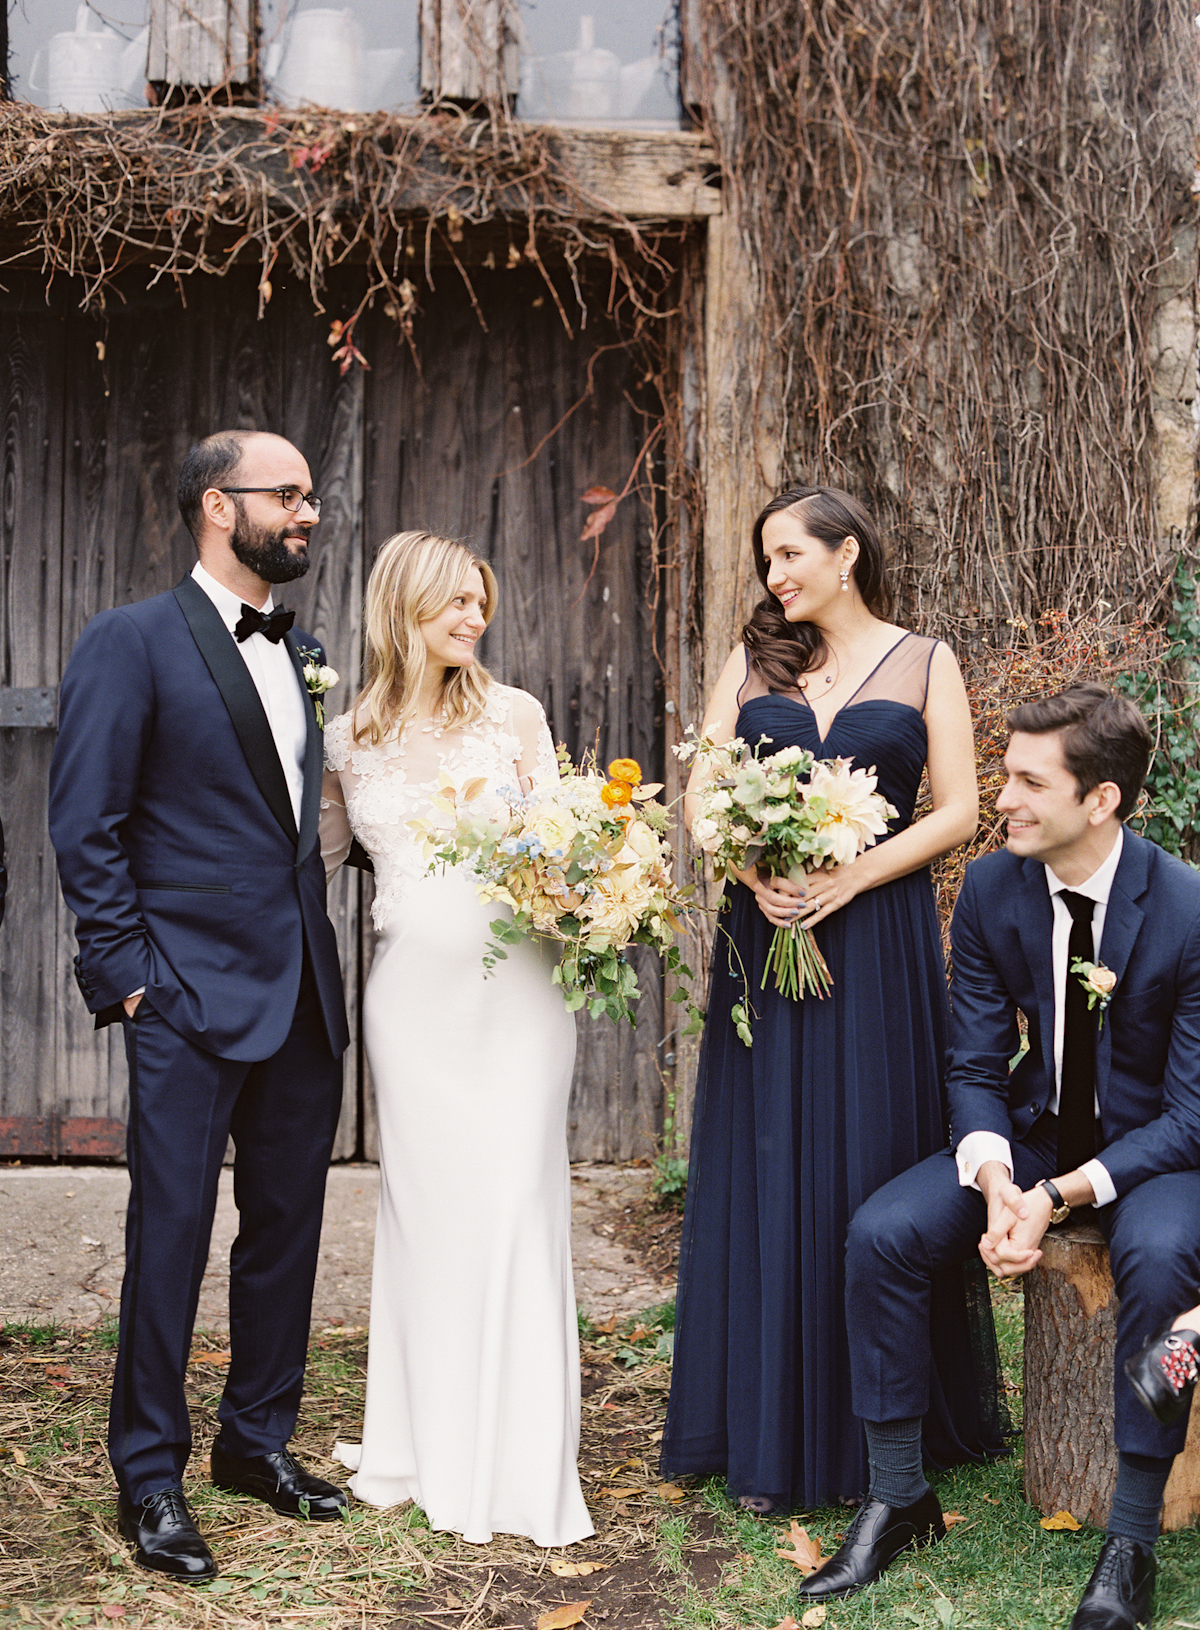 Blue Hill at Stone Barns wedding, event planner Ang Weddings and Events, photography Judy Pak, navy bridesmaid dresses Amsale, navy tuxedo